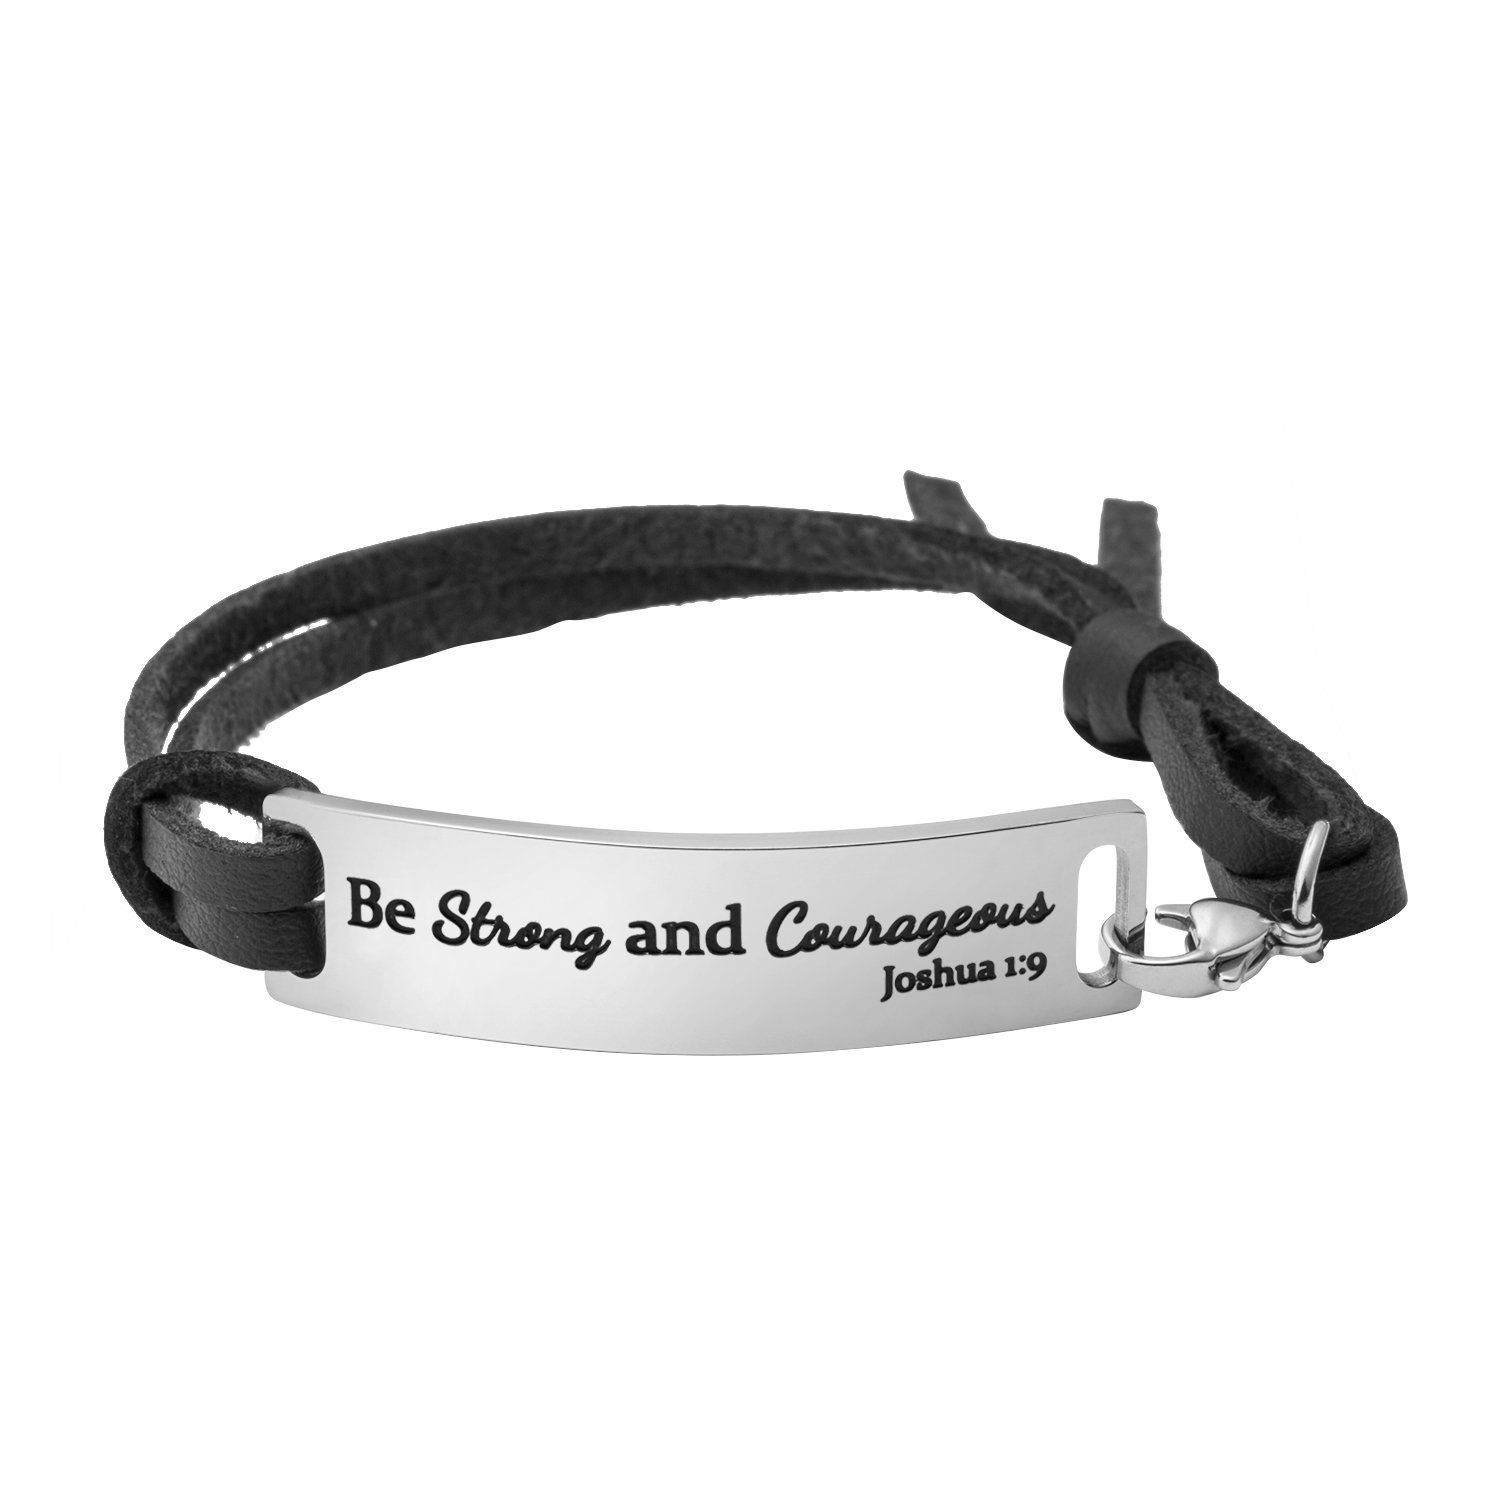 Yiyang Motivational Bracelet for Ladies Bible Verse Engraved Leather Jewelry Be Strong and Courageous